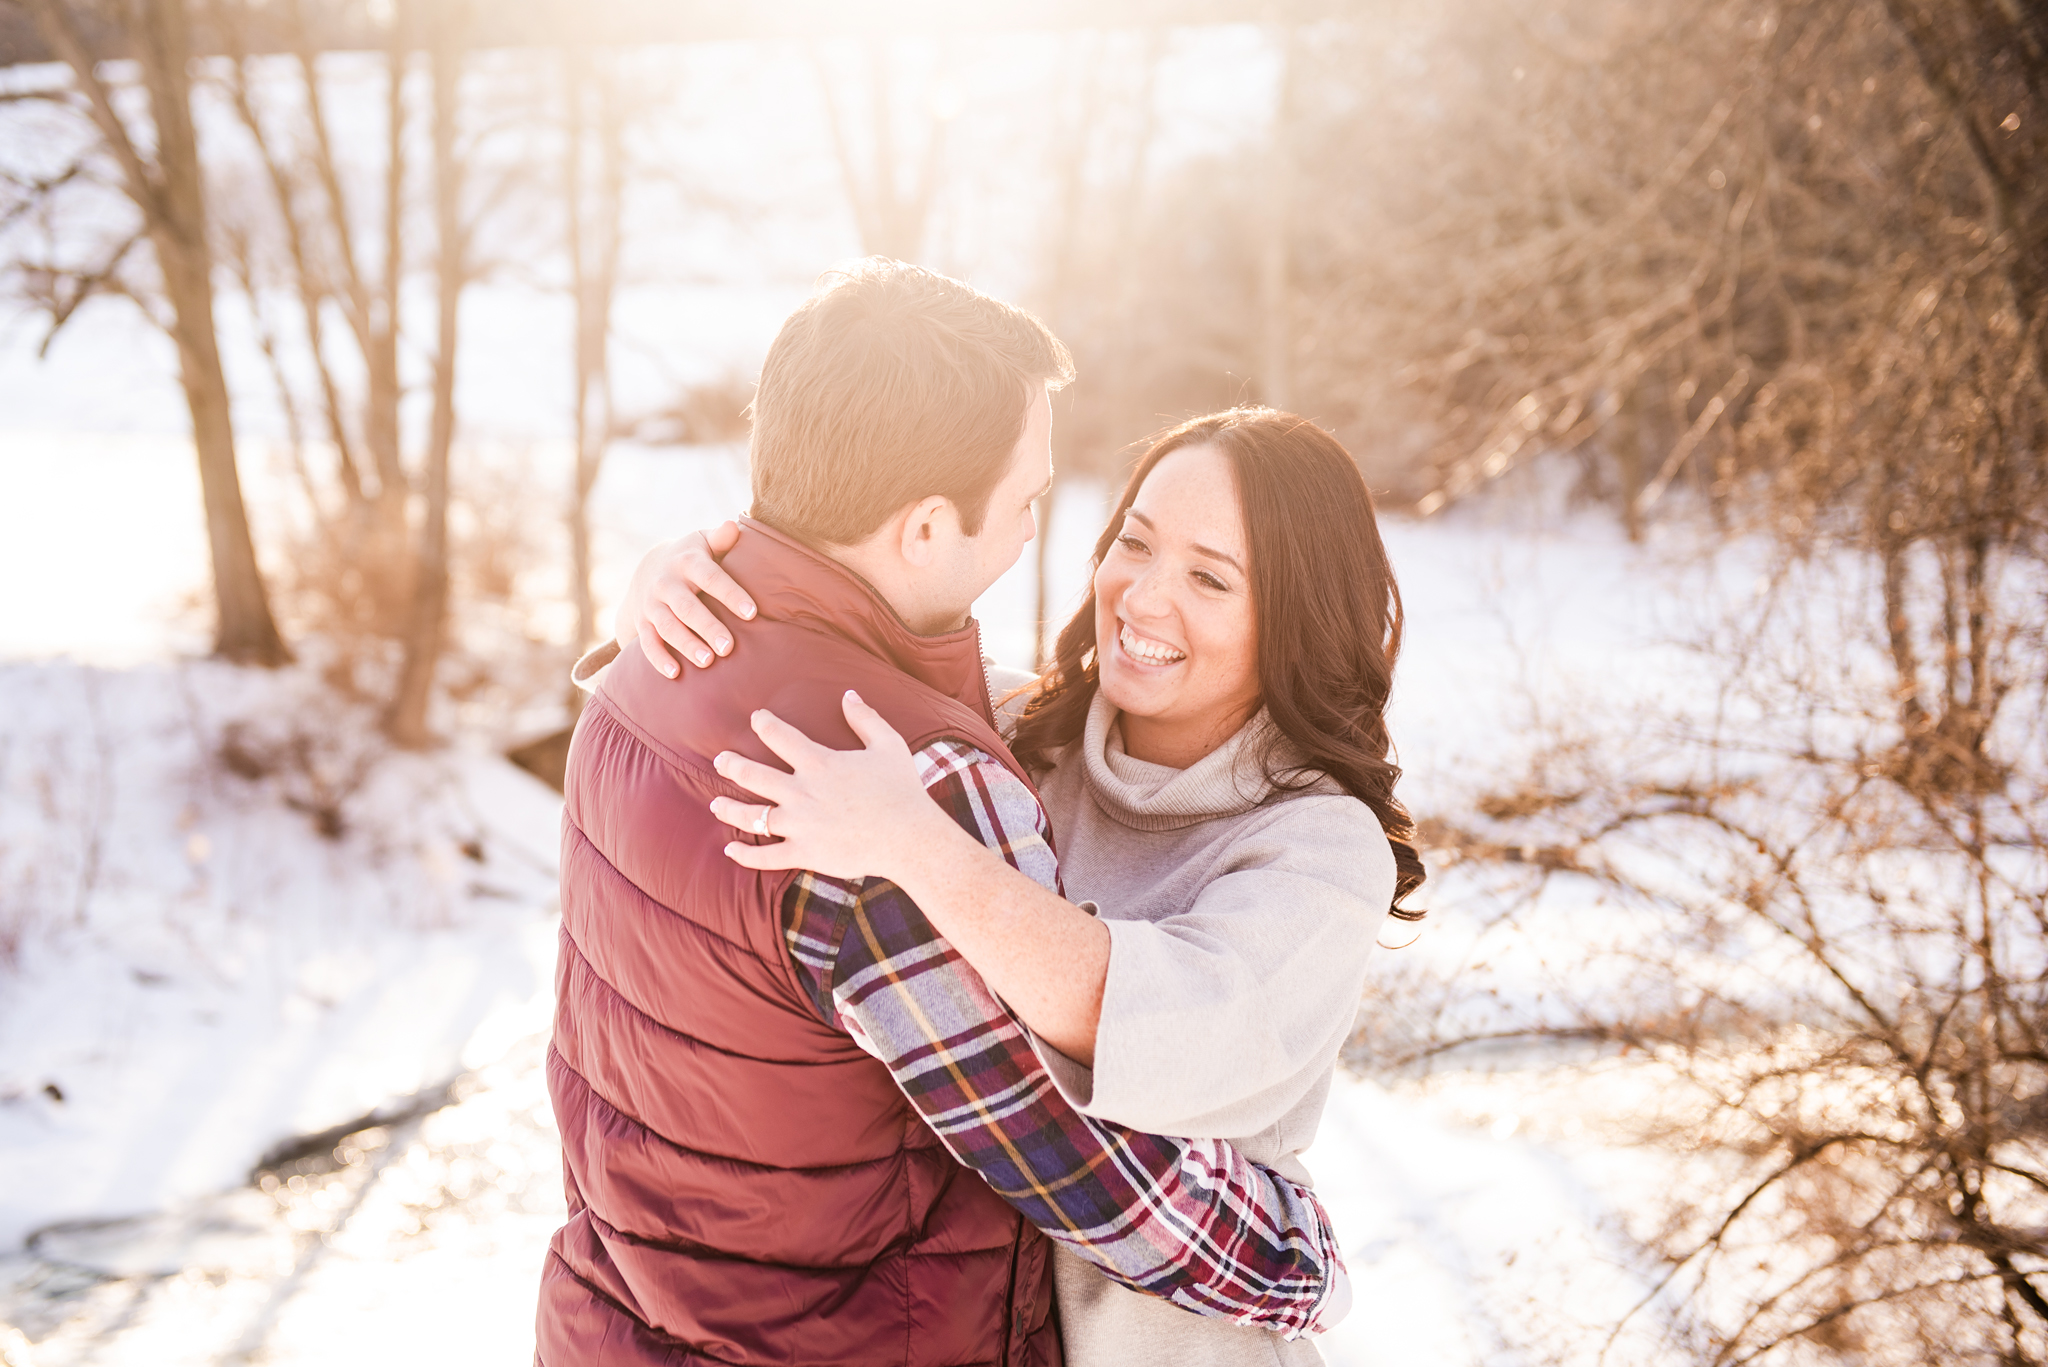 Fallbrook_Central_NY_Engagement_Session_JILL_STUDIO_Rochester_NY_Photographer_DSC_4706.jpg